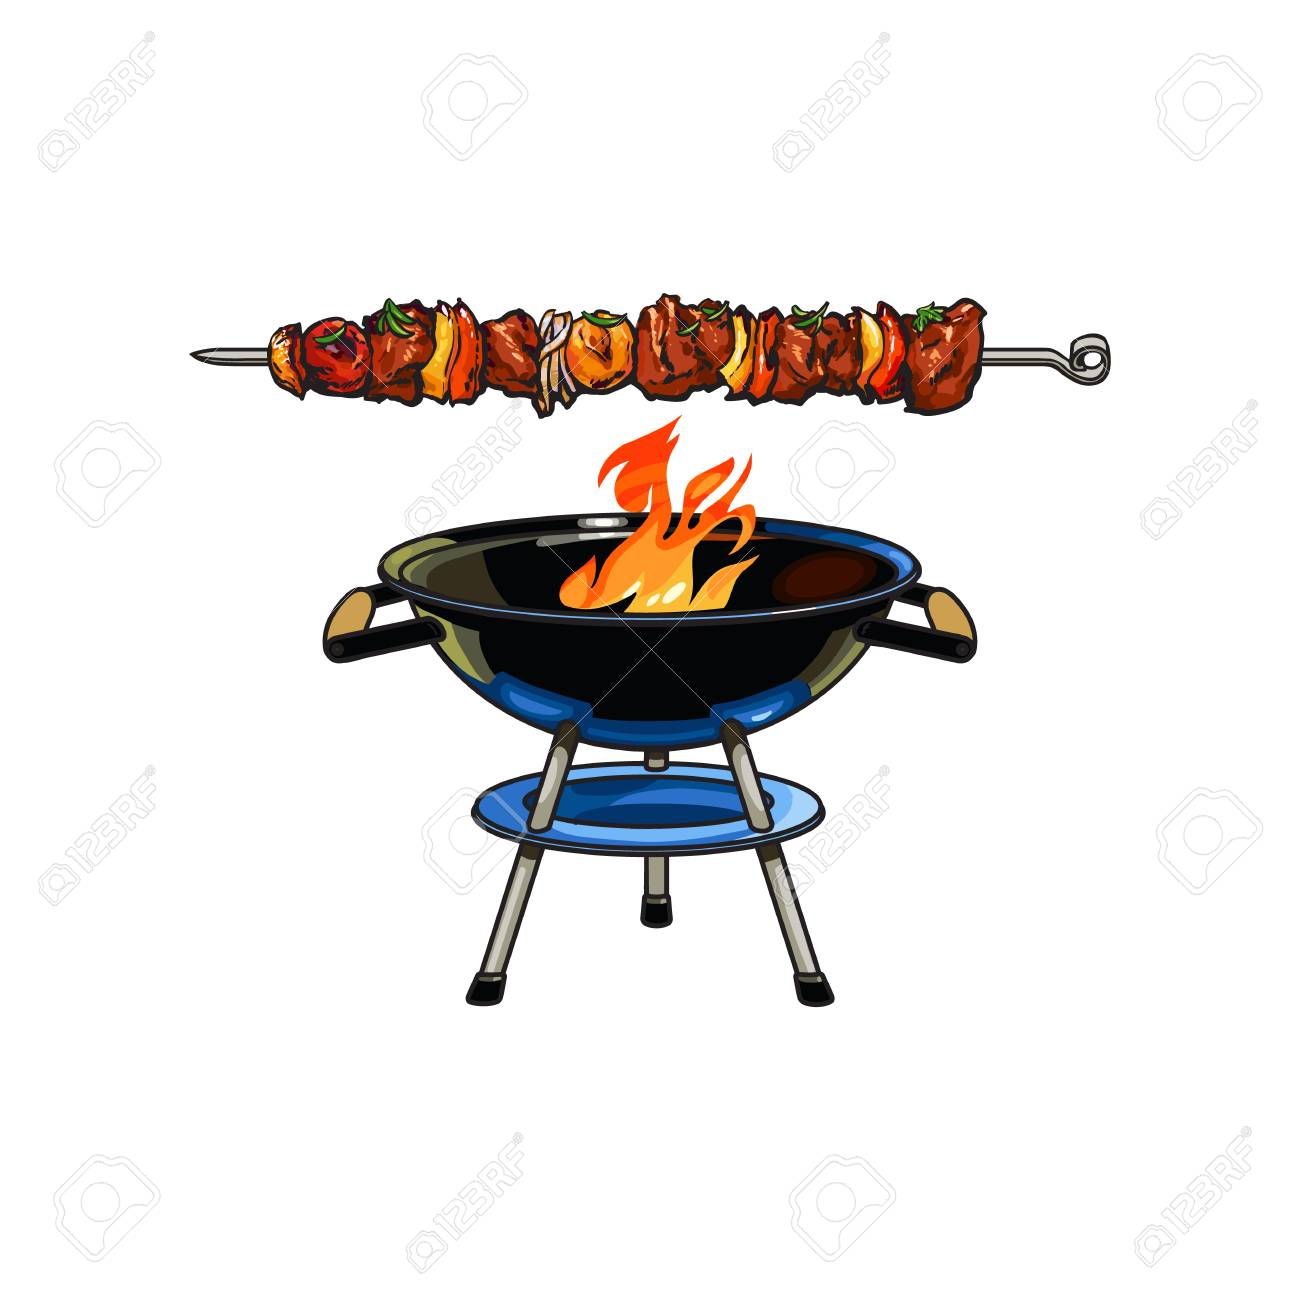 Round barbecue, BBQ charcoal grill with burning flame, sketch...